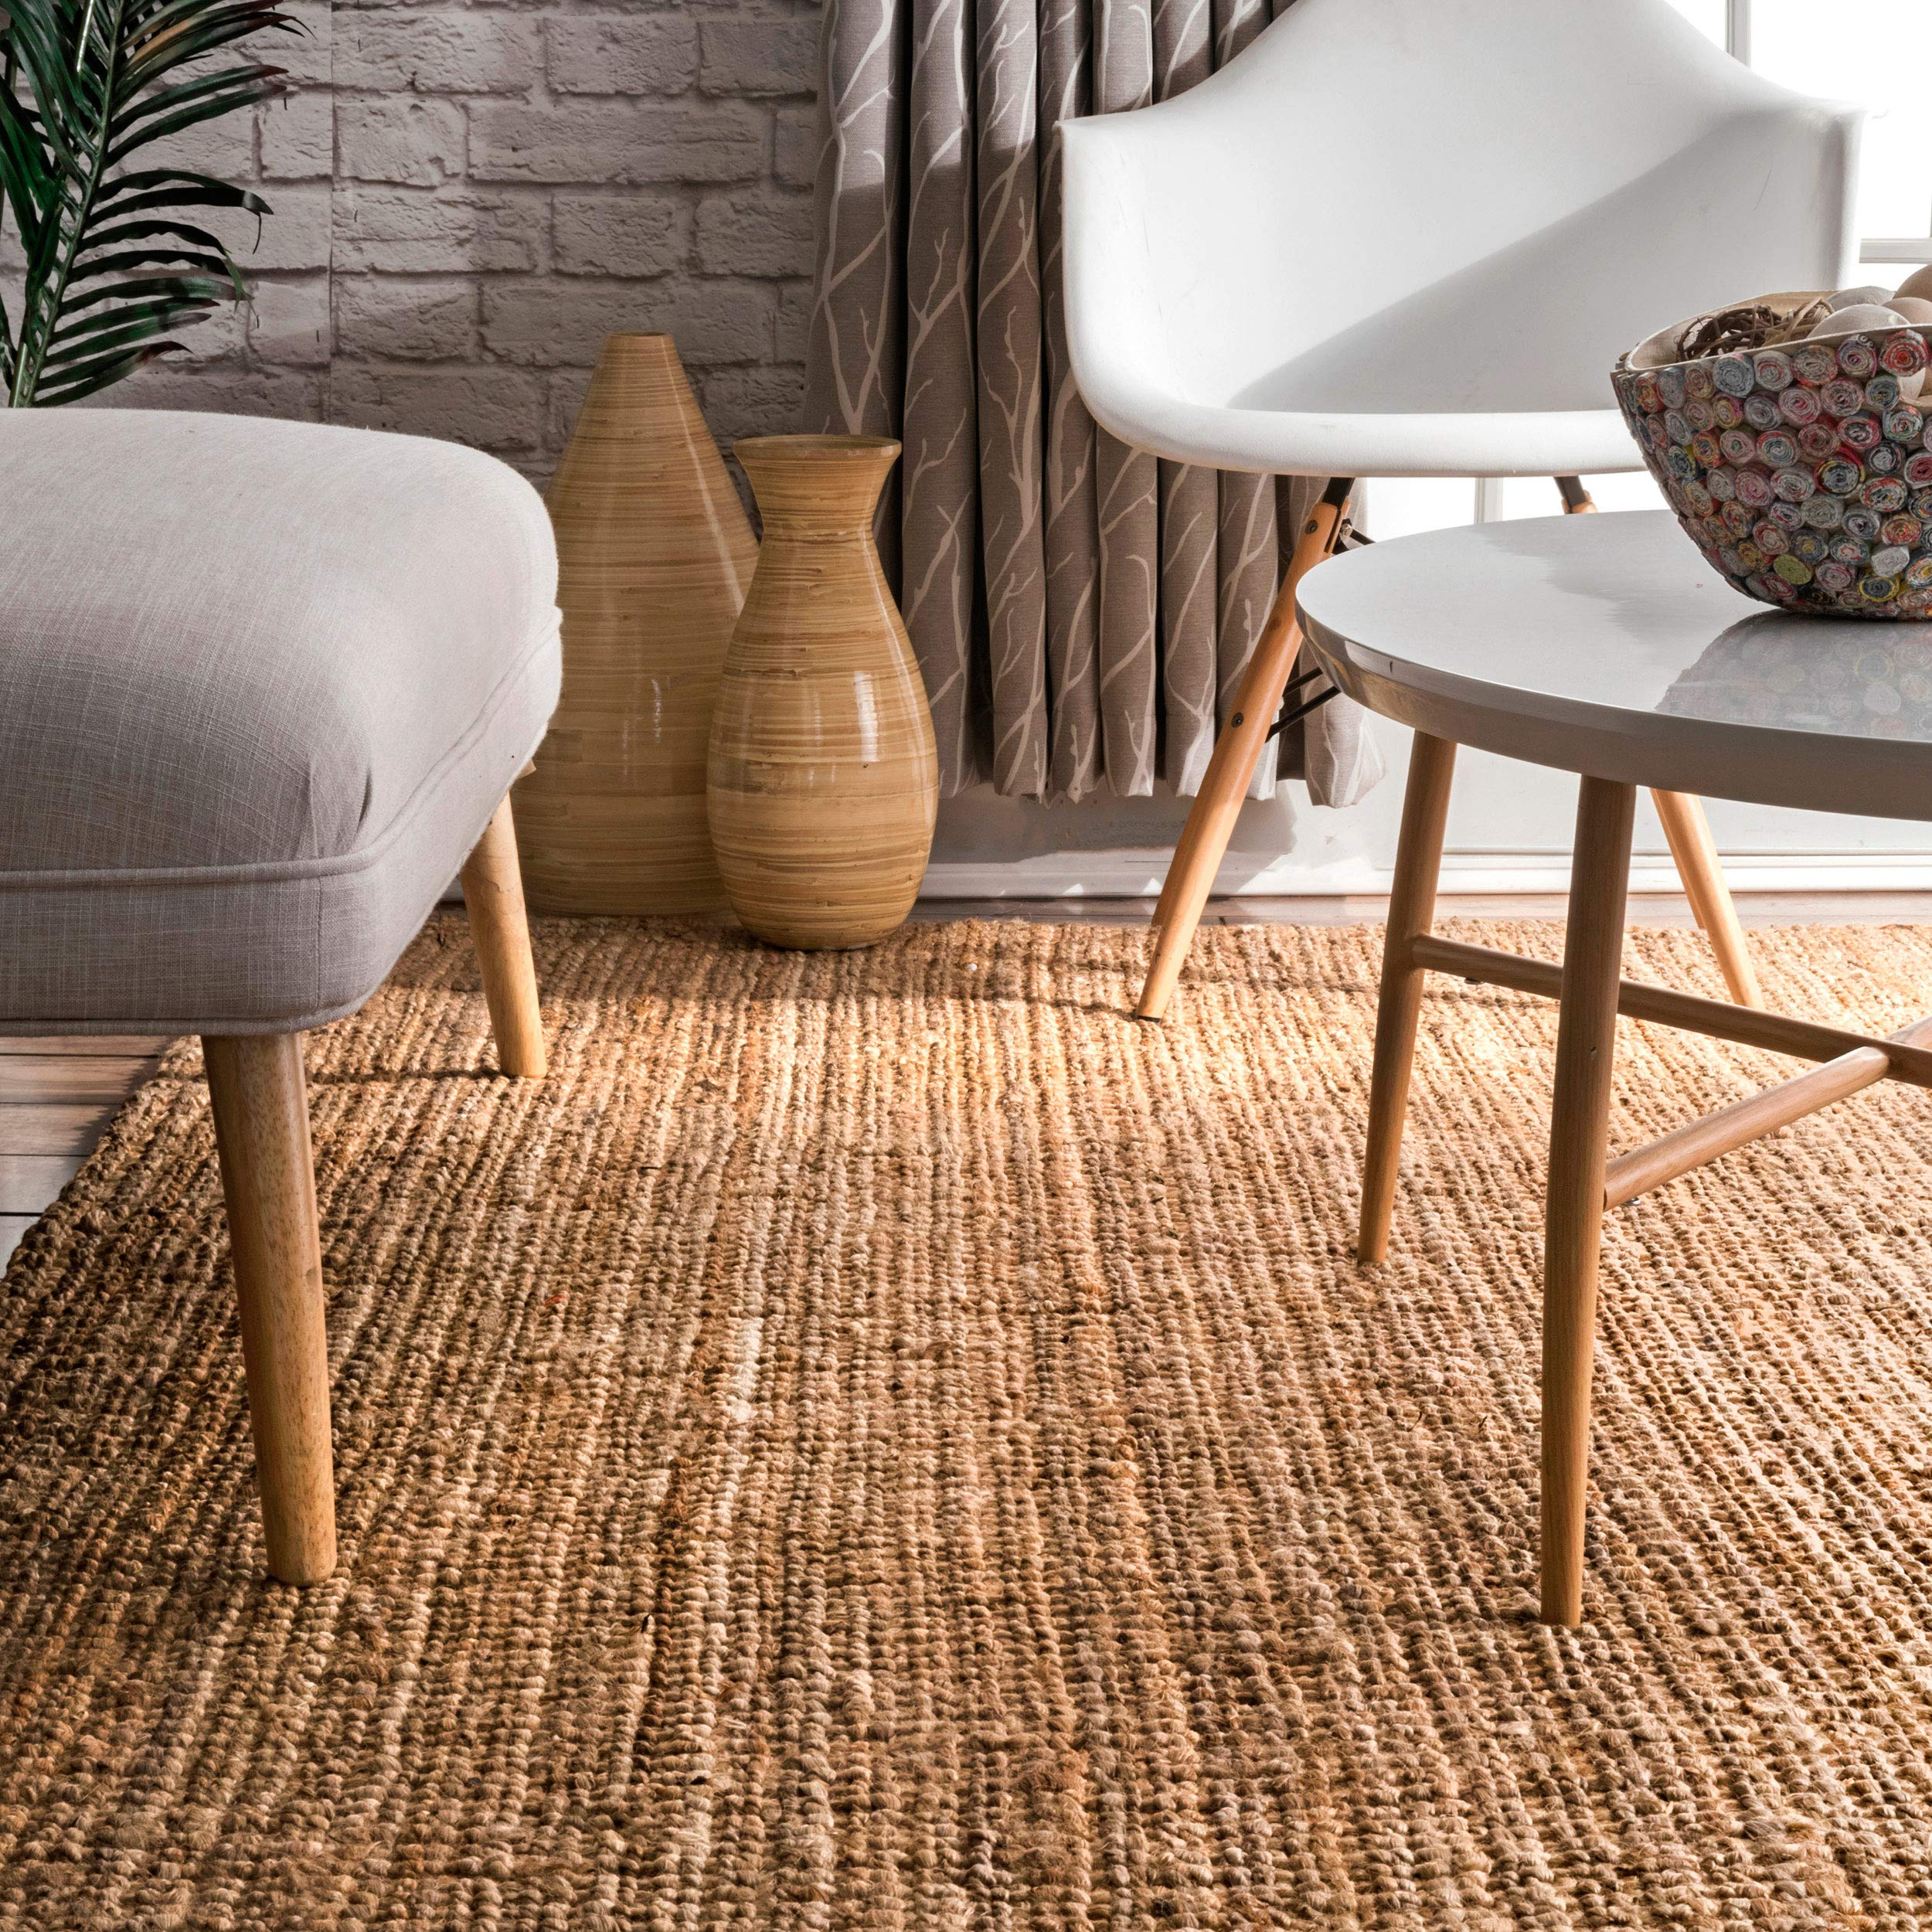 nuLOOM Handwoven Jute Ribbed Solid Area Rugs, 4' x 6', Natural by nuLOOM (Image #6)